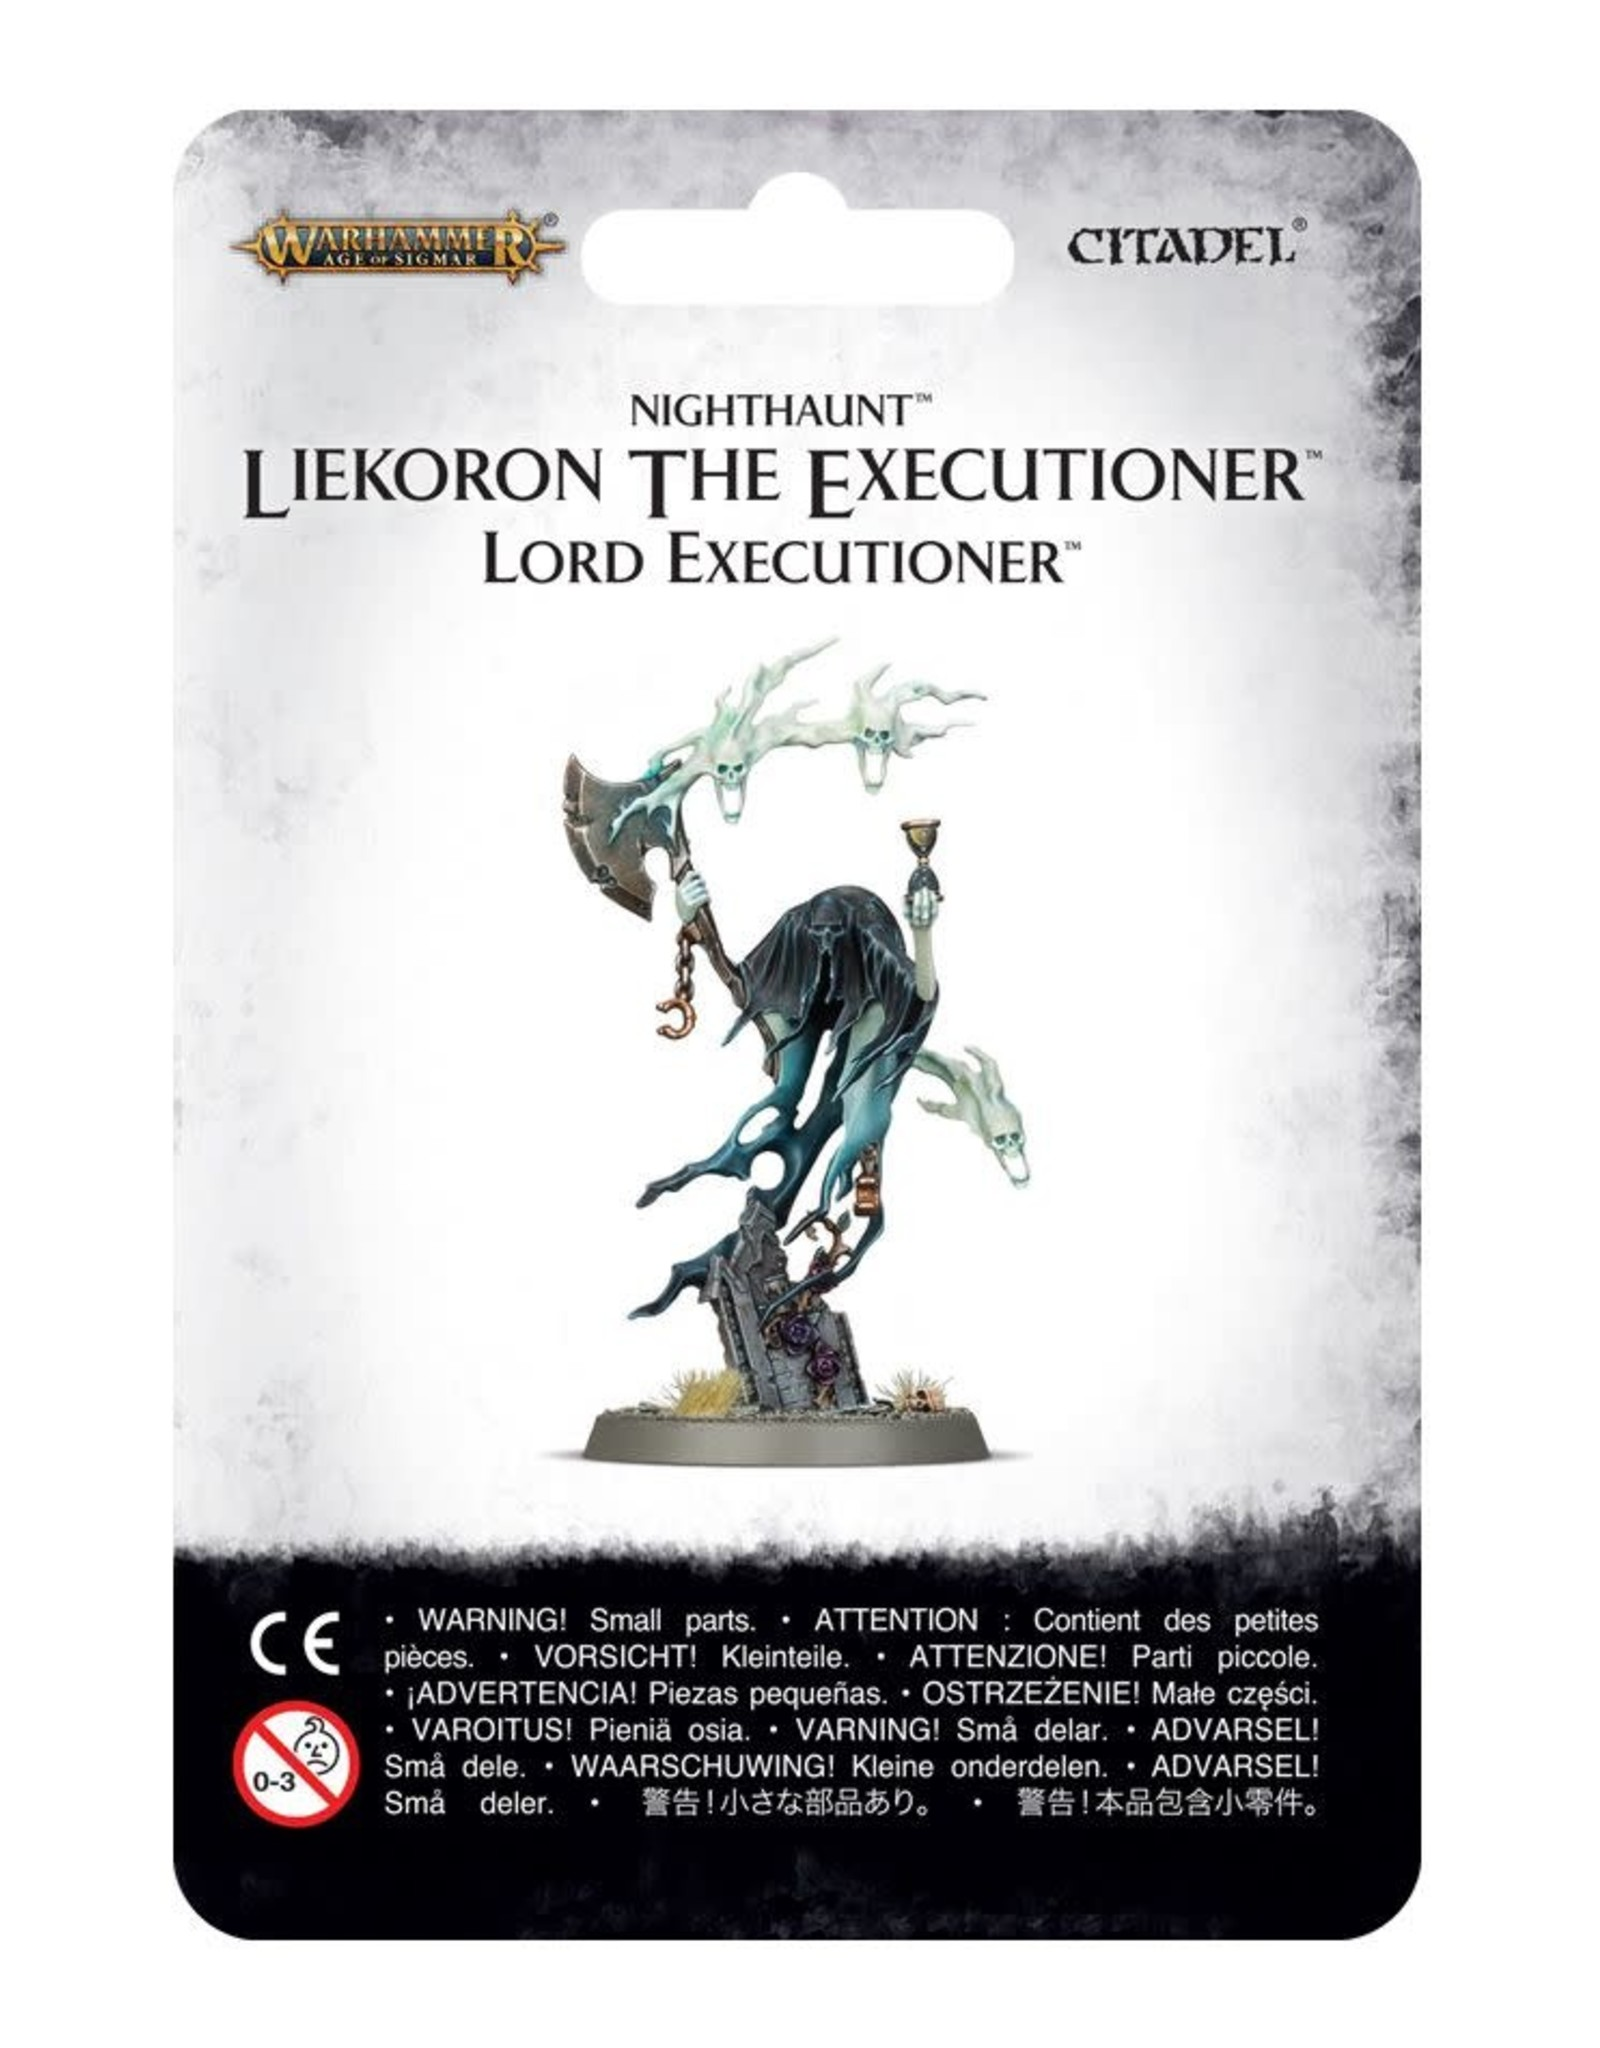 Age of Sigmar Nighthaunt Liekoron the Executioner